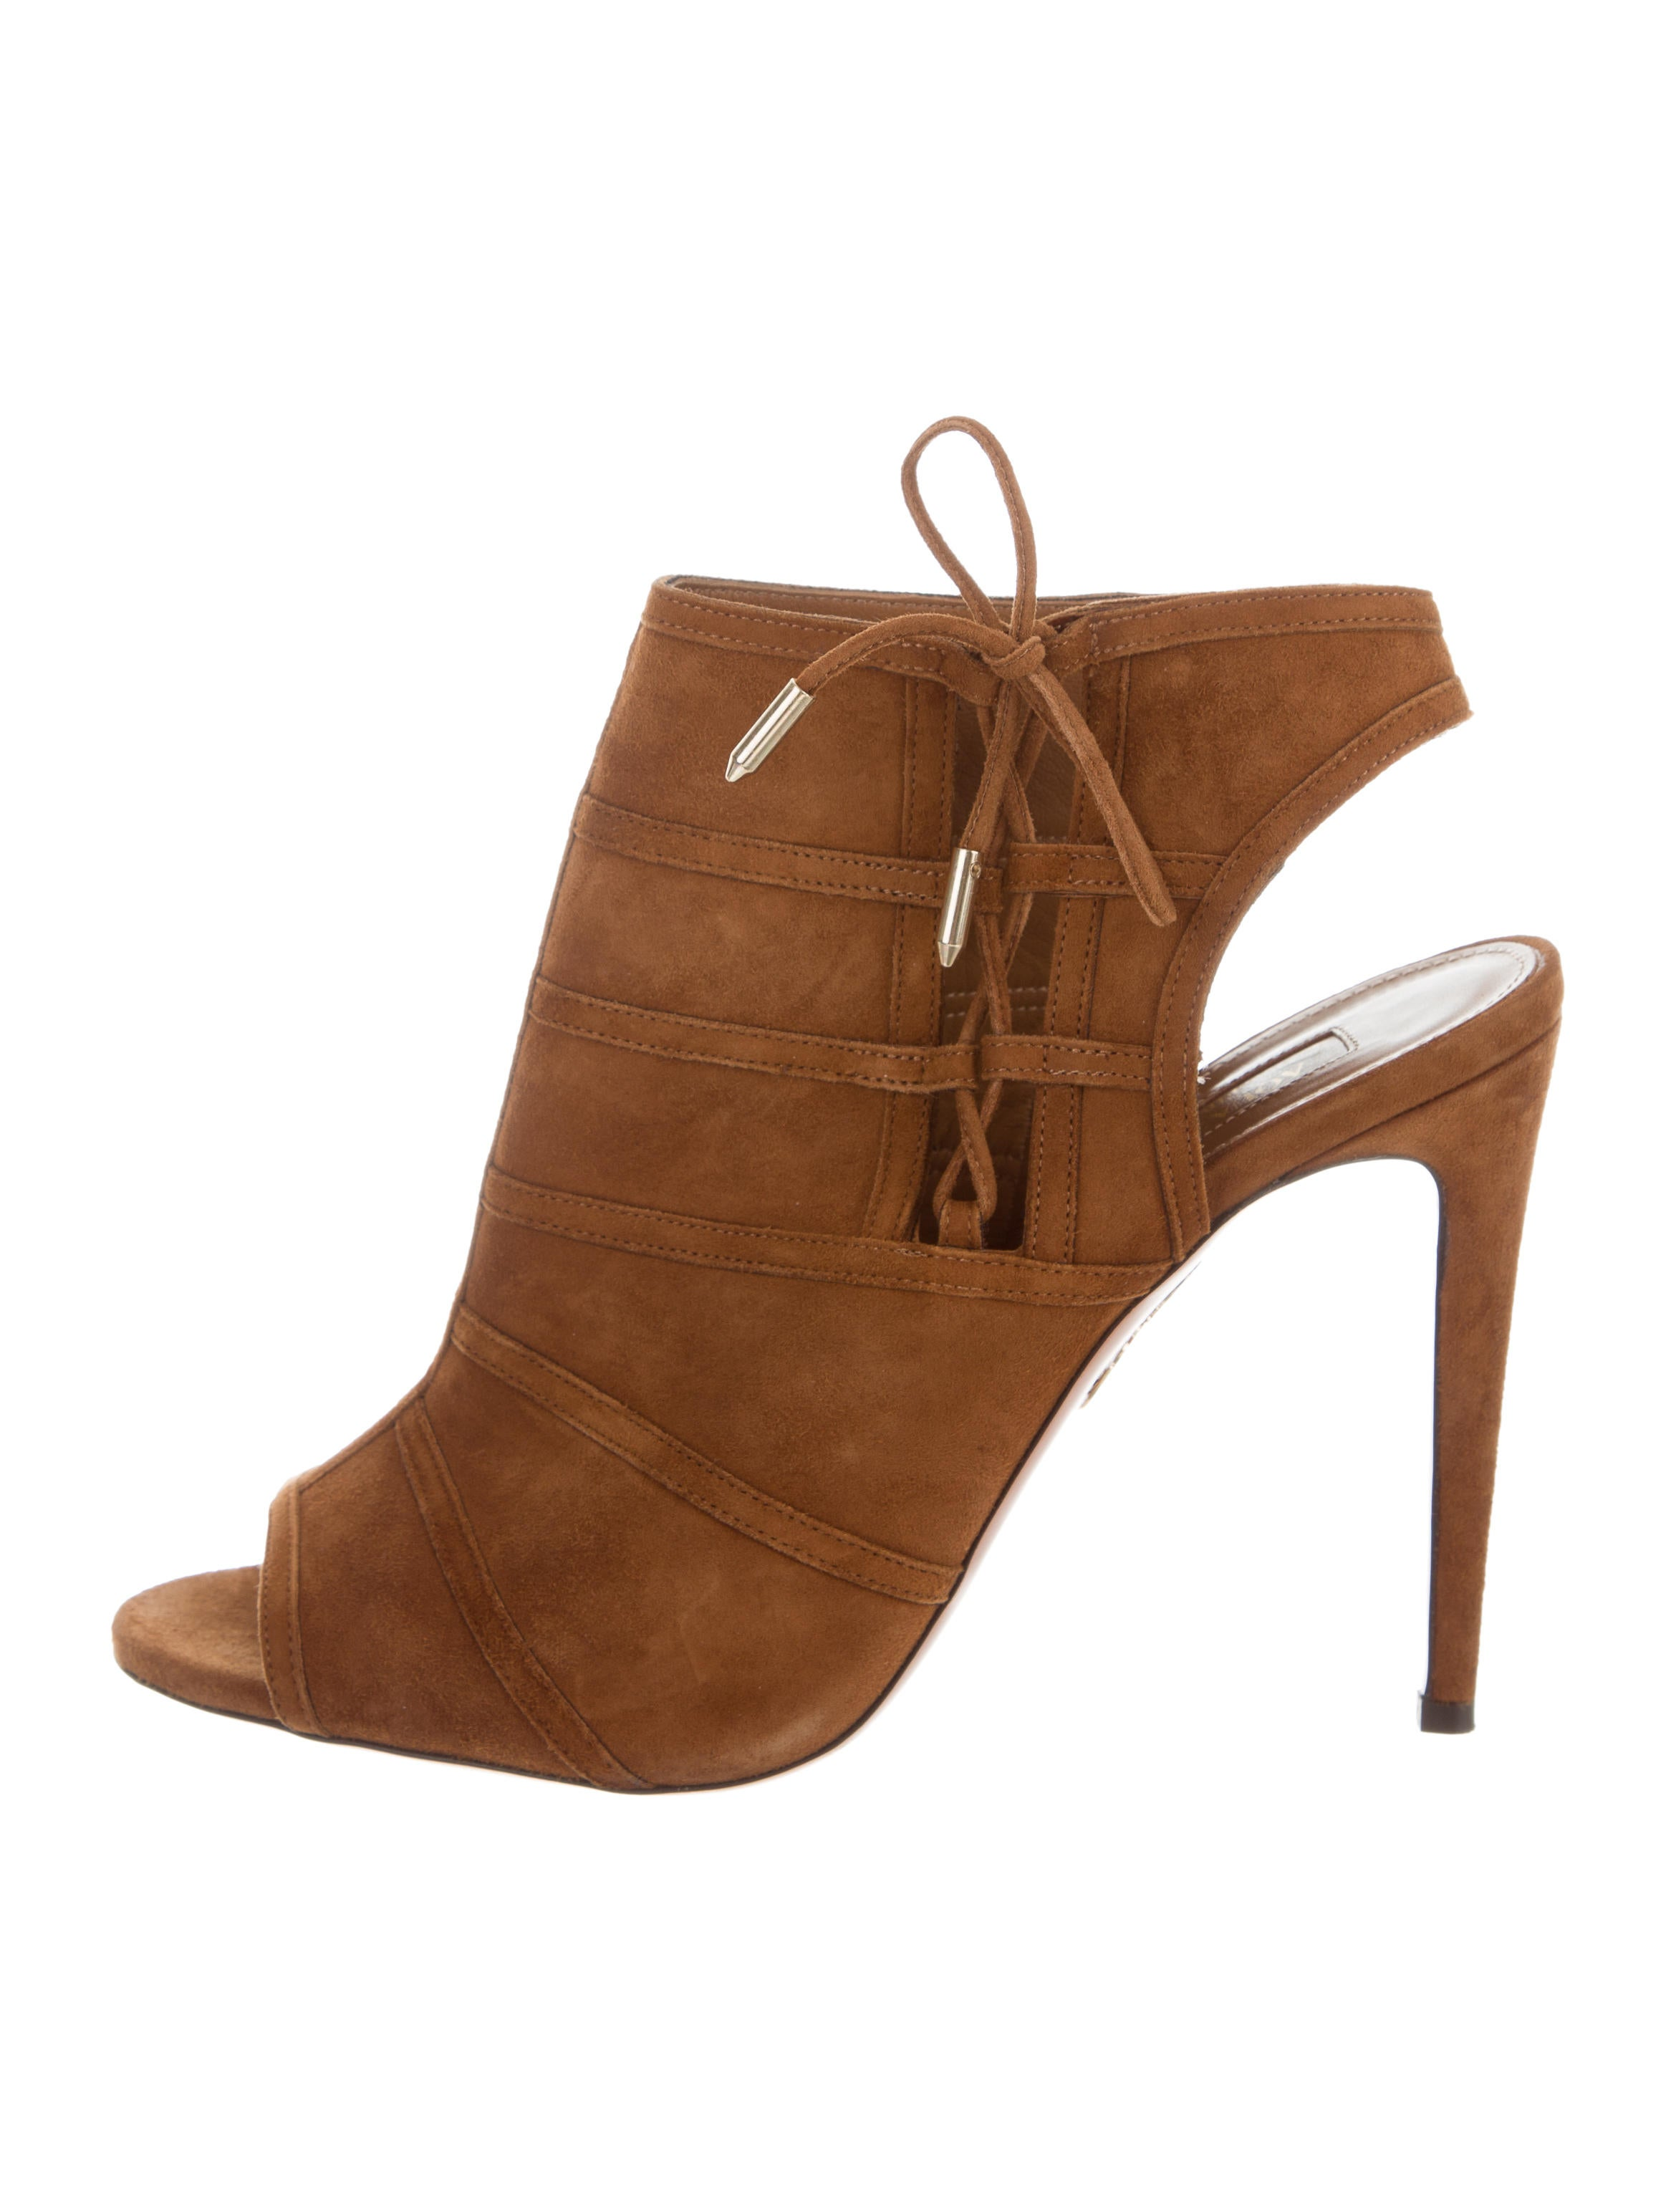 cheap sale factory outlet Aquazzura Oui Baby 105 Booties online for sale best wholesale cheap price many kinds of 5x8WY